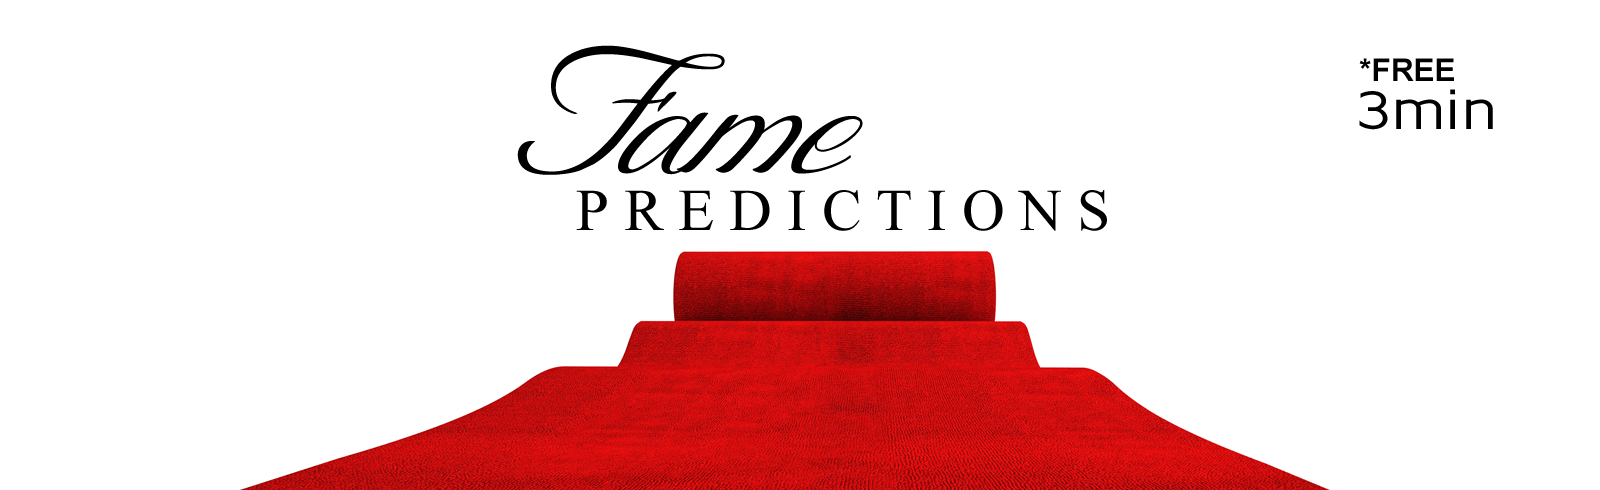 Fame-Predictions